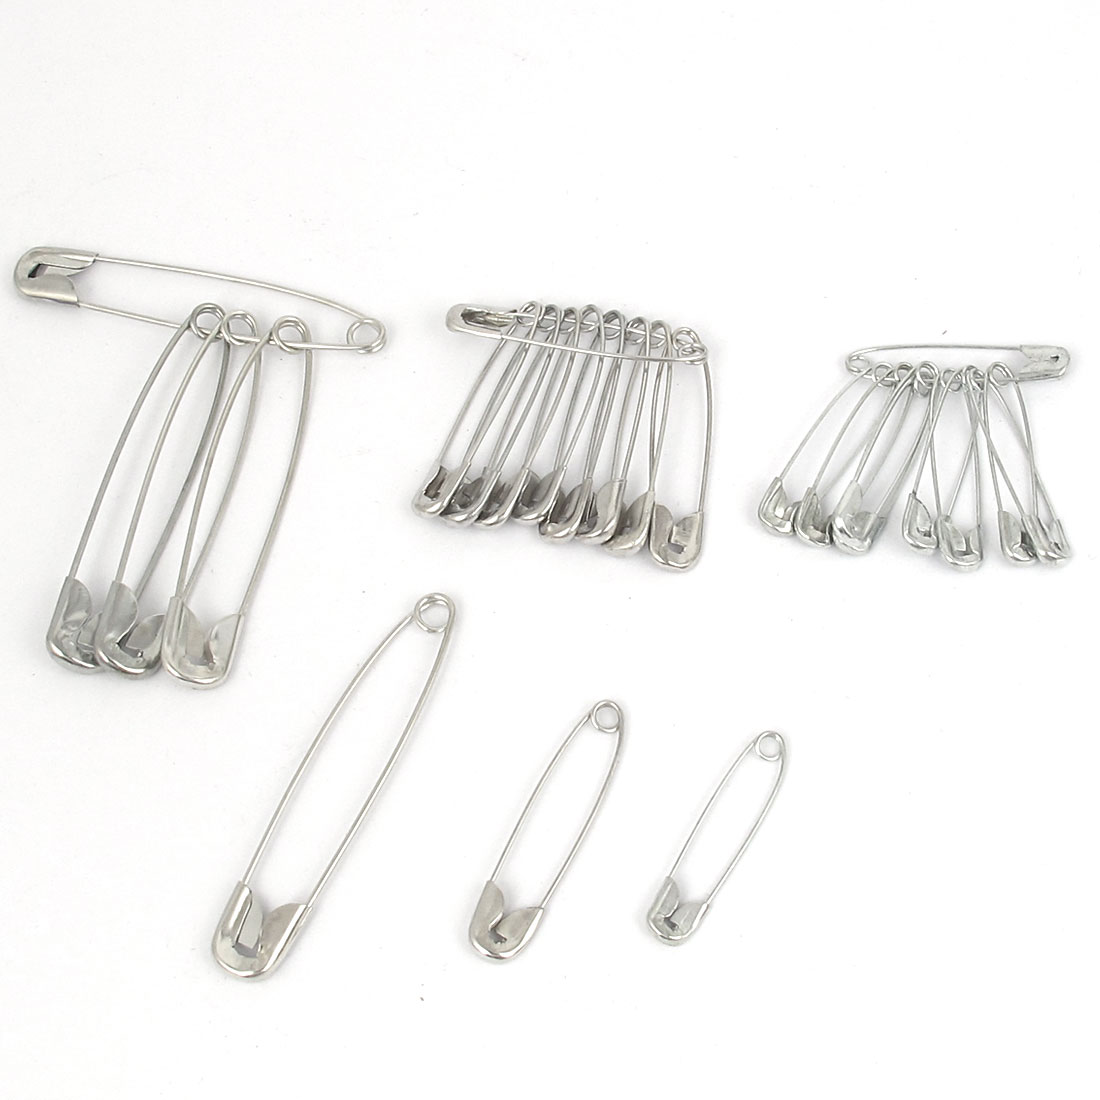 25pcs Silver Tone Metal Safety Pins Clothing Trimming Fastener Sewing Craft Tool